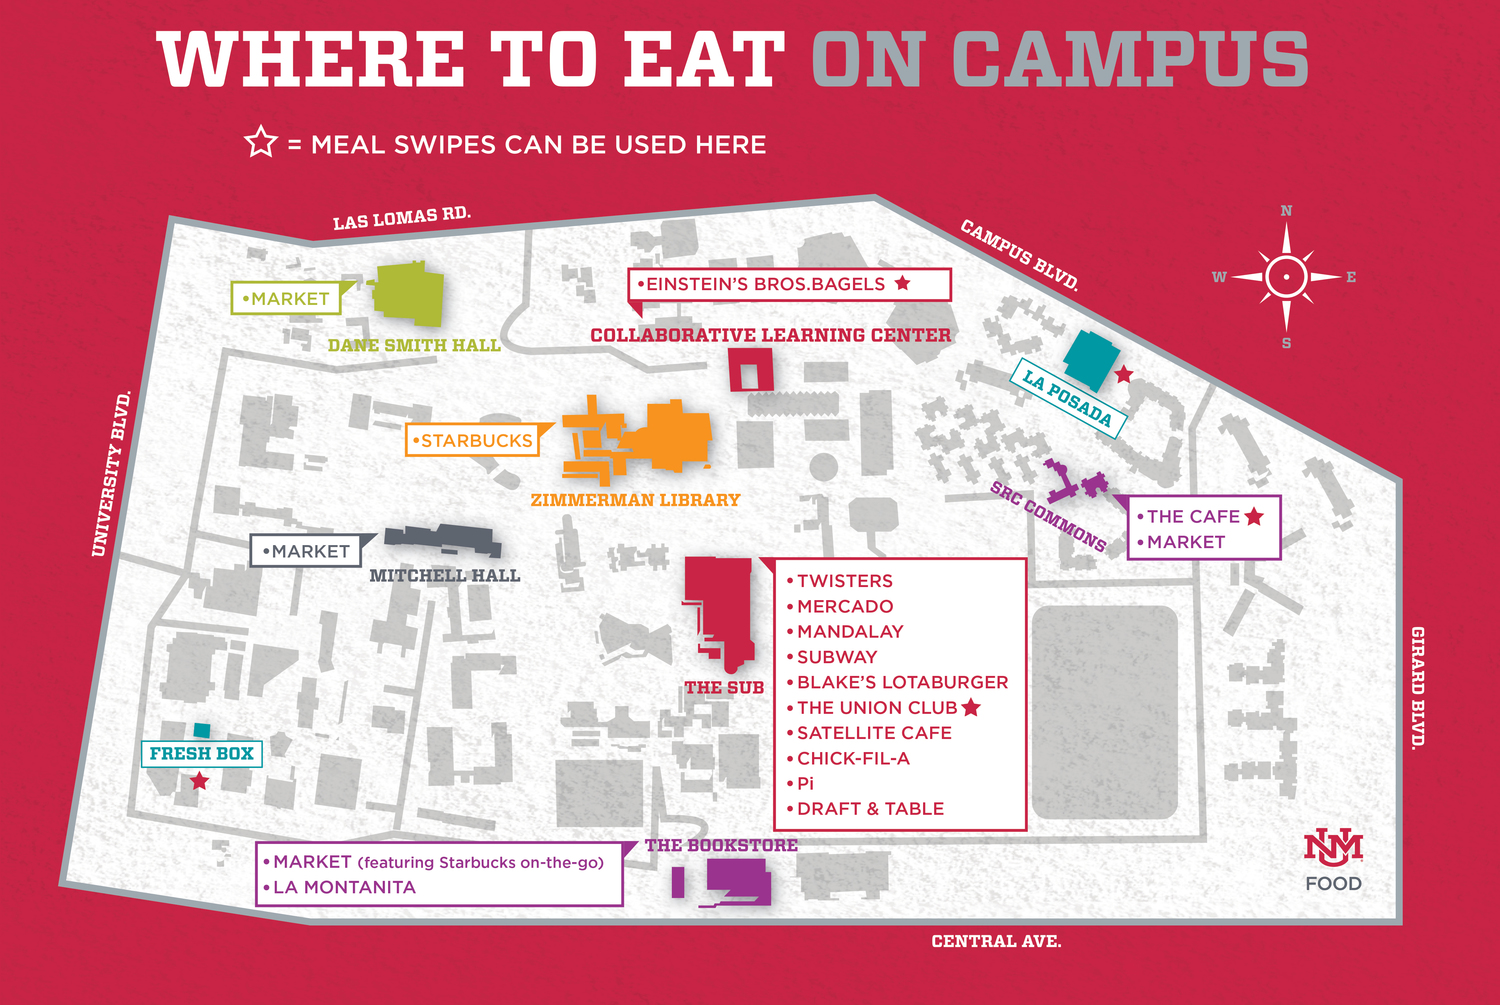 Dine On Campus at University of New Mexico